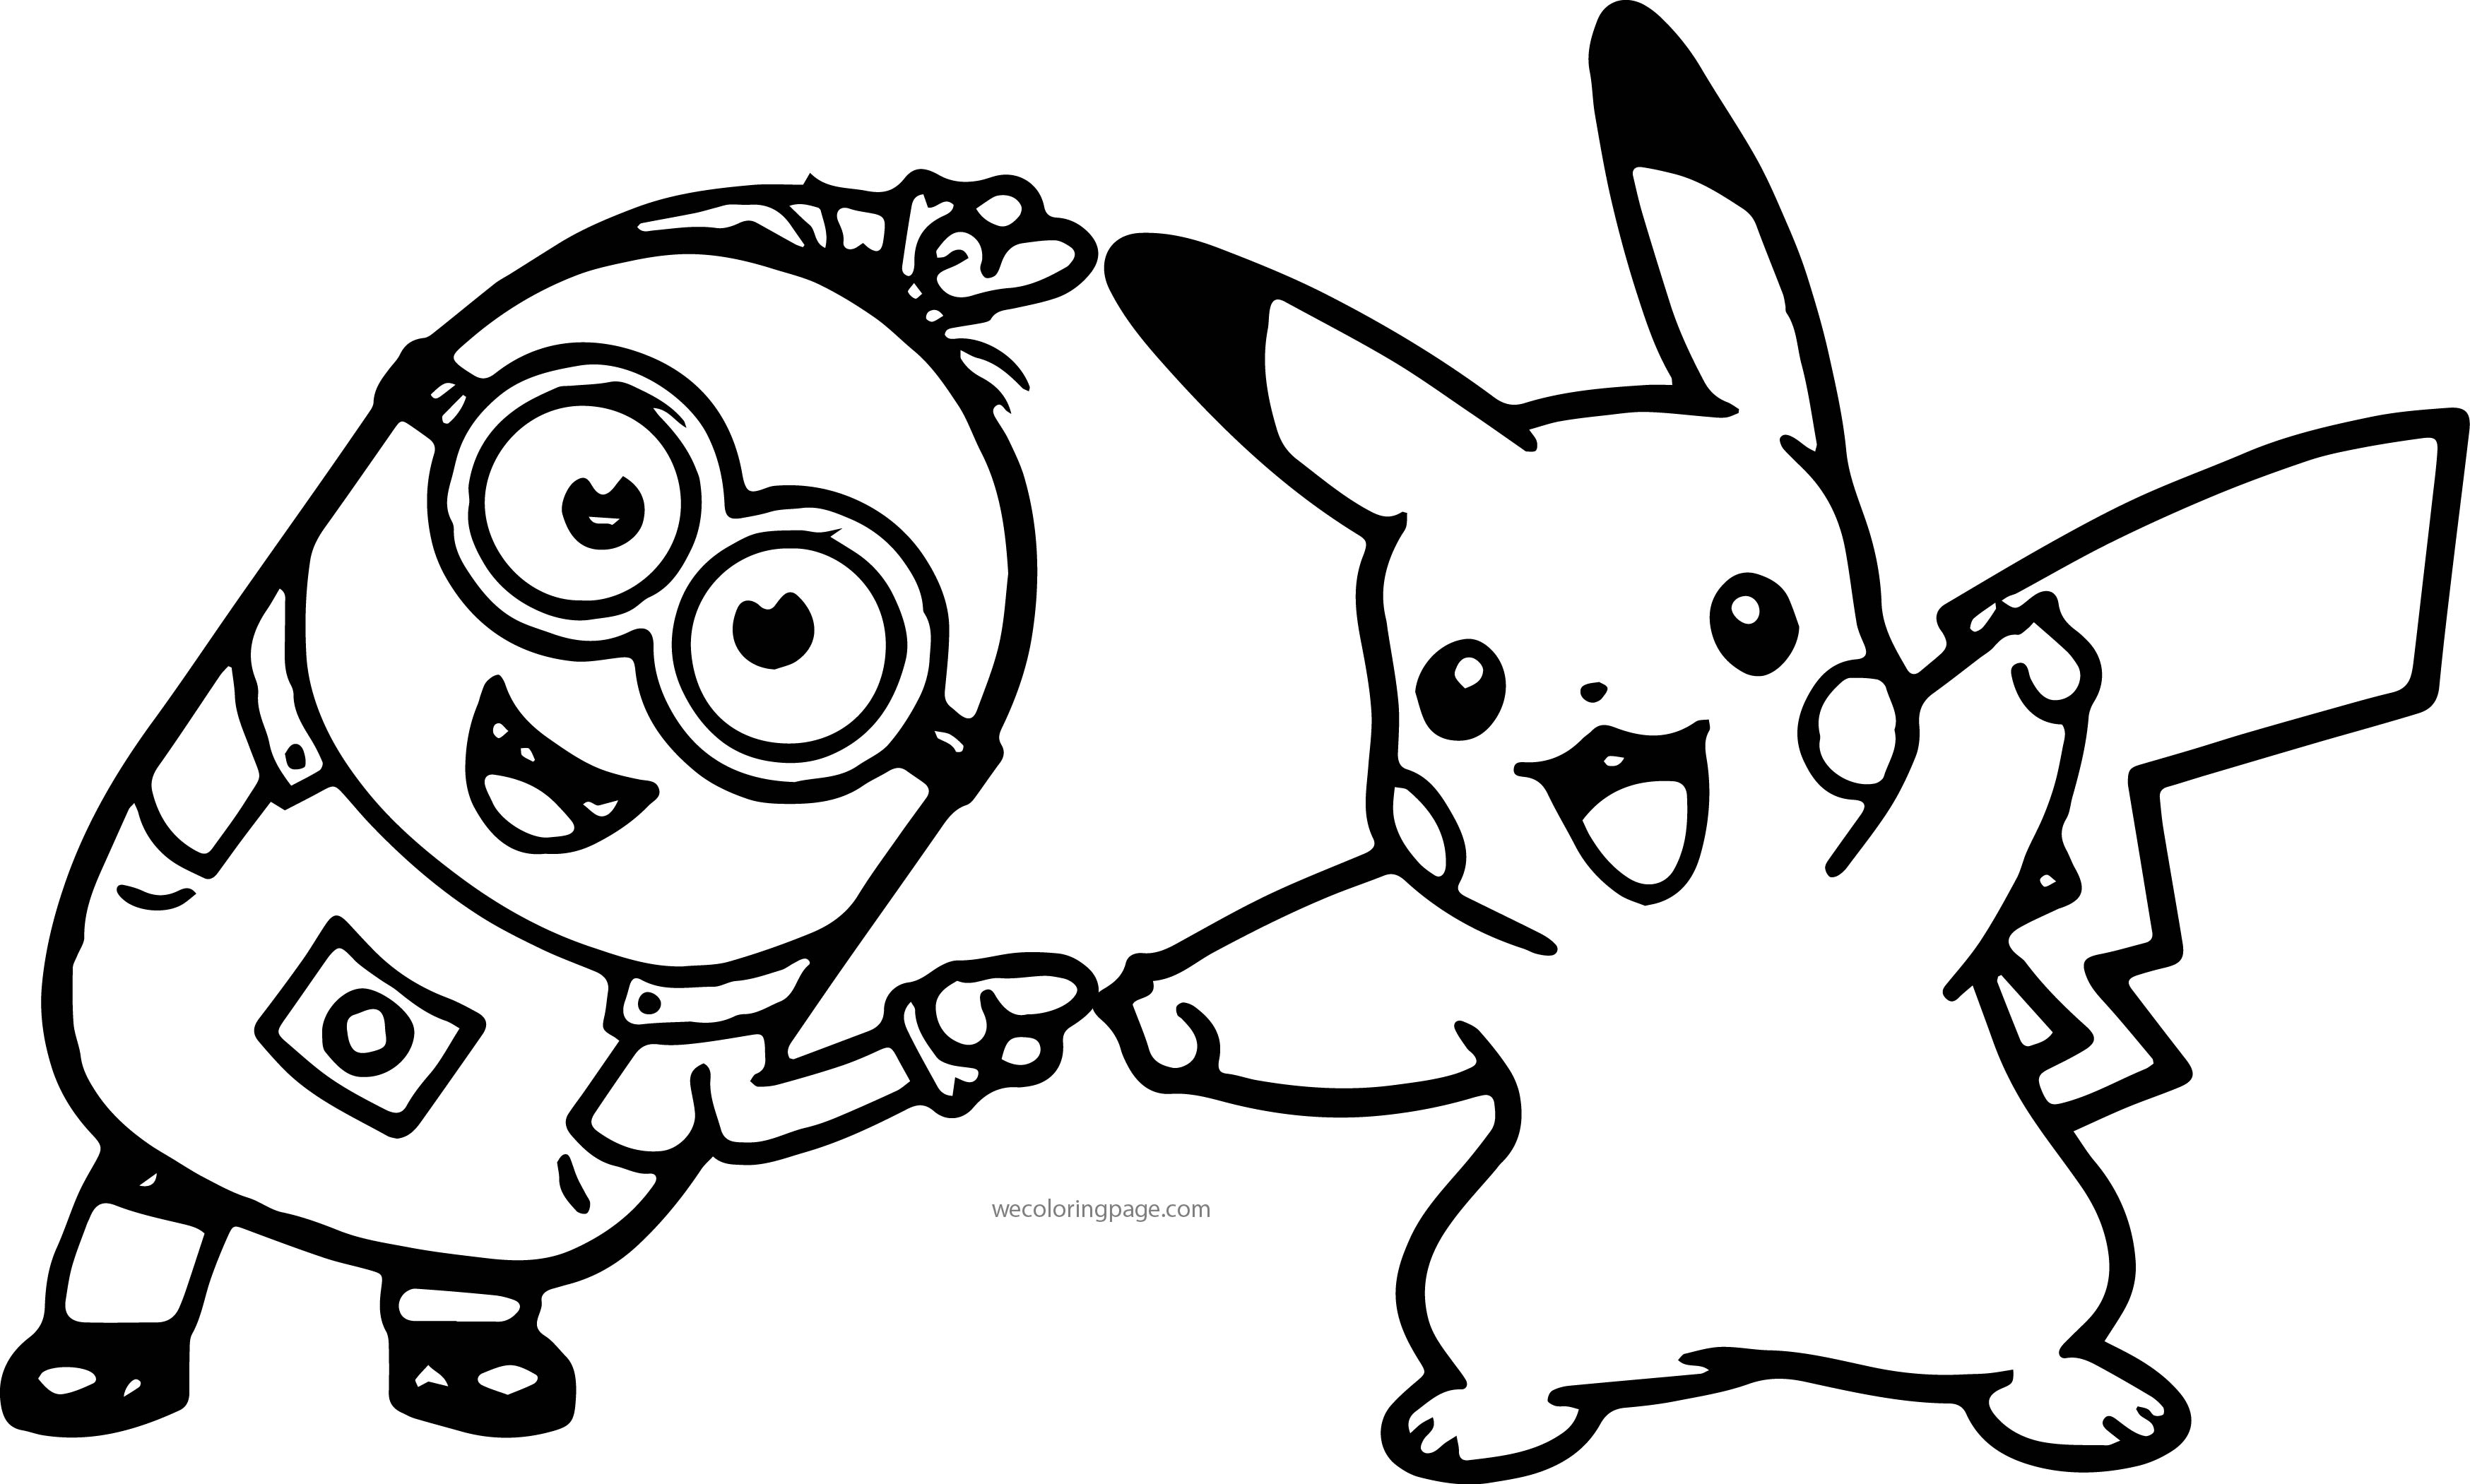 pokemon coloring pages pikachu ex | Mega Pokemon Coloring Pages Printable at GetDrawings.com ...